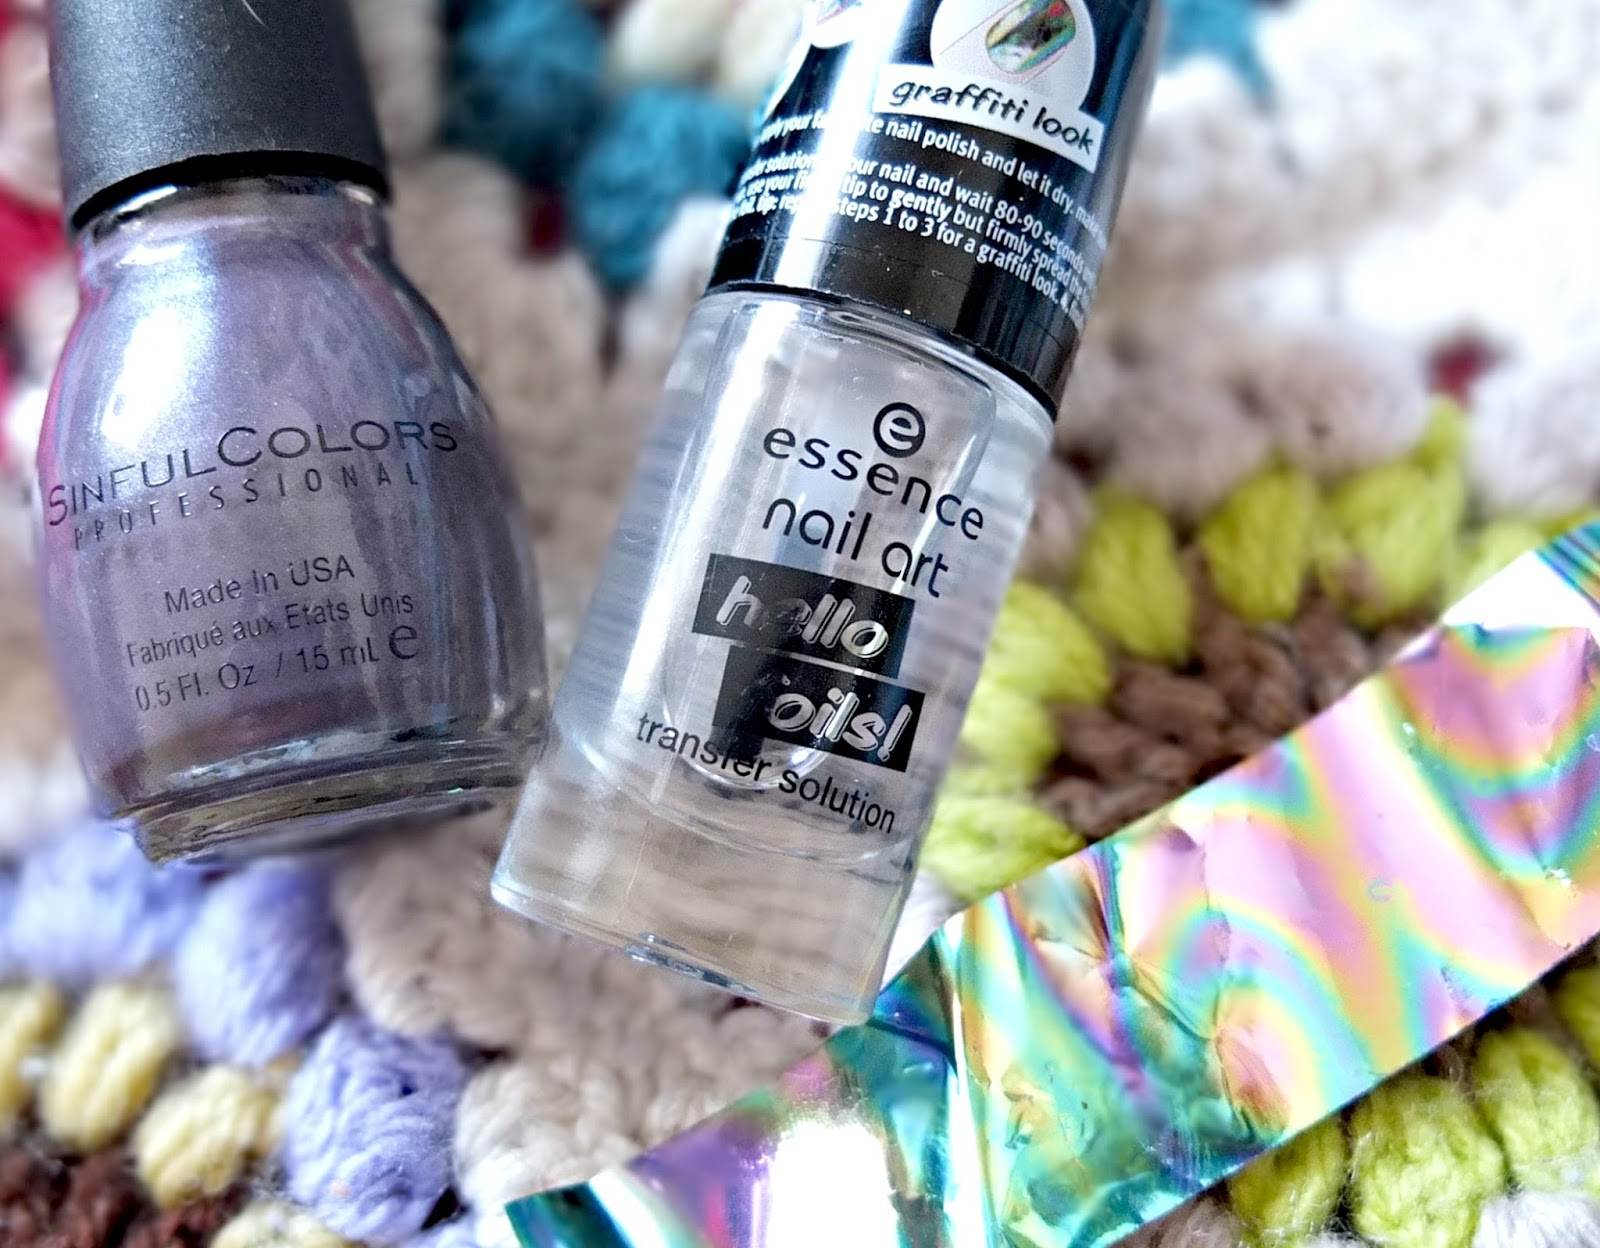 Essence hello foils, foil manicure range, available at Wilkinson on Hello Terri Lowe beauty blog.